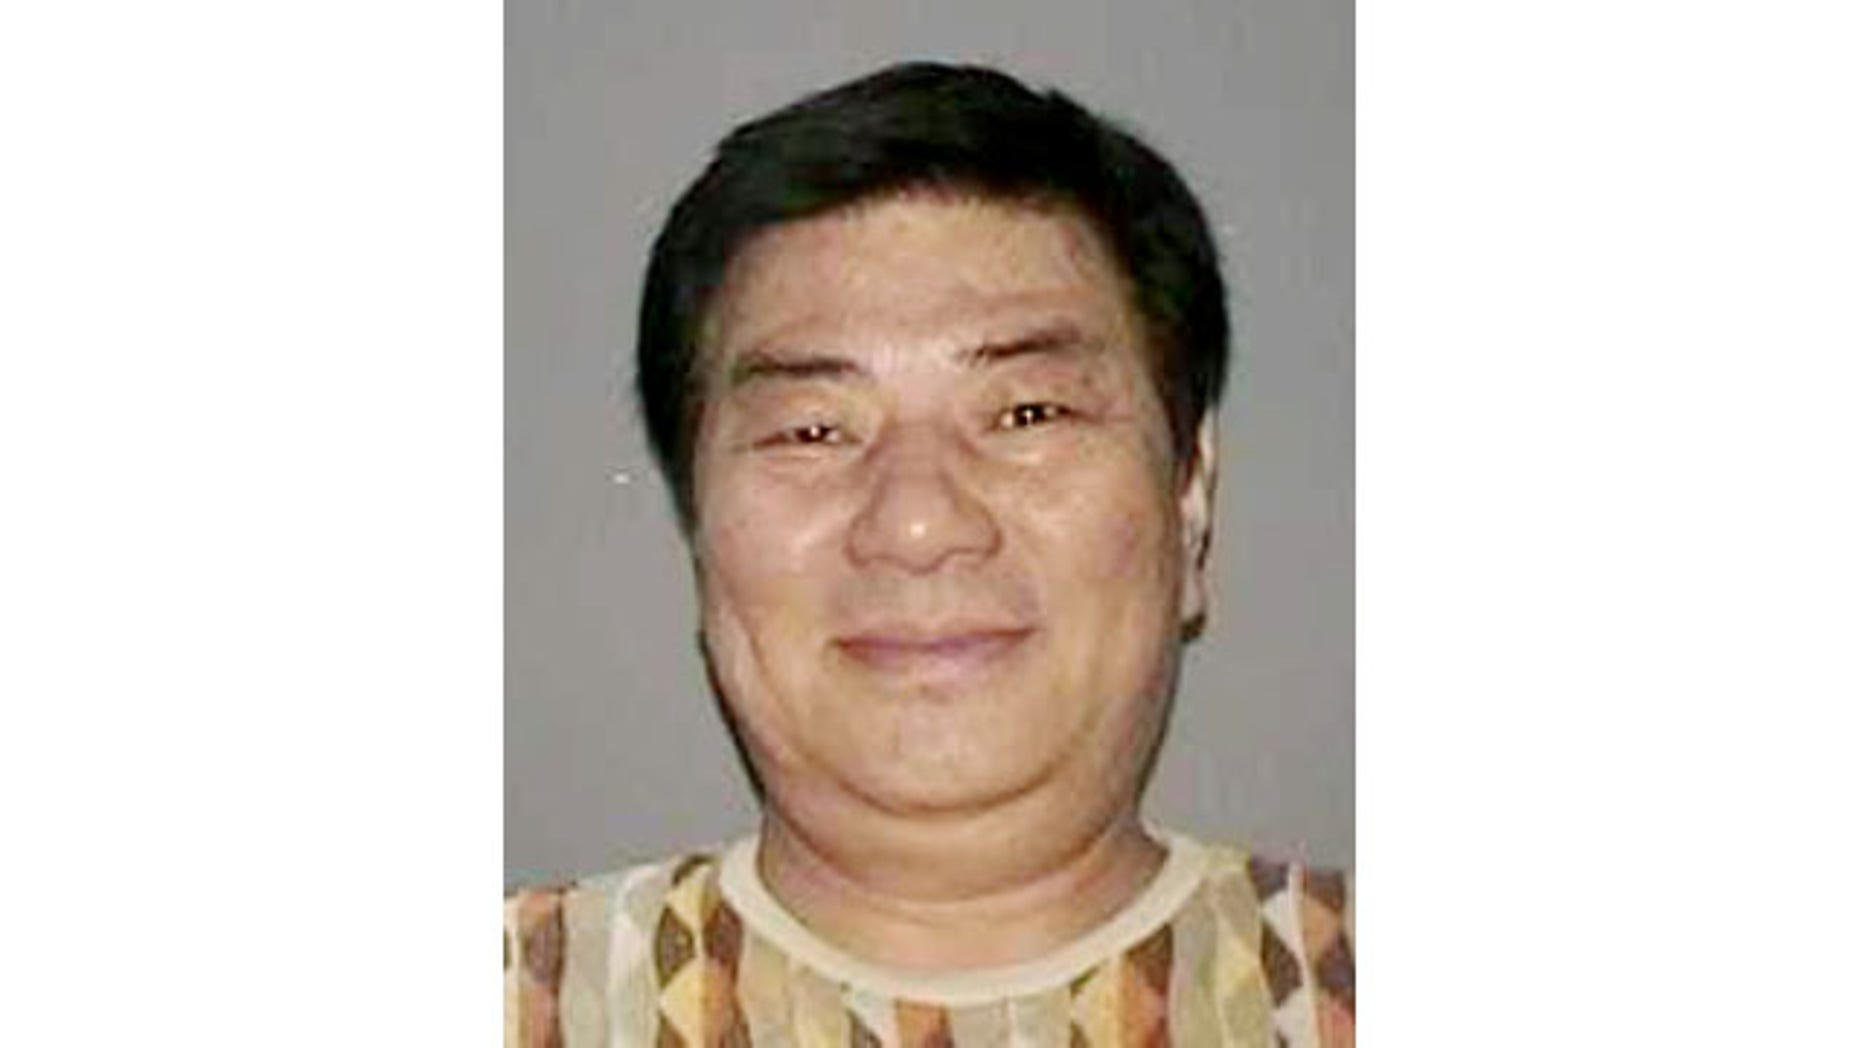 In this undated photo provided by the Nassau County Police Department in Mineola, N.Y. on Wednesday, Sept. 25, 2013, a New York State Driver's License photo of Sang Ho Kim is shown. (AP Photo)